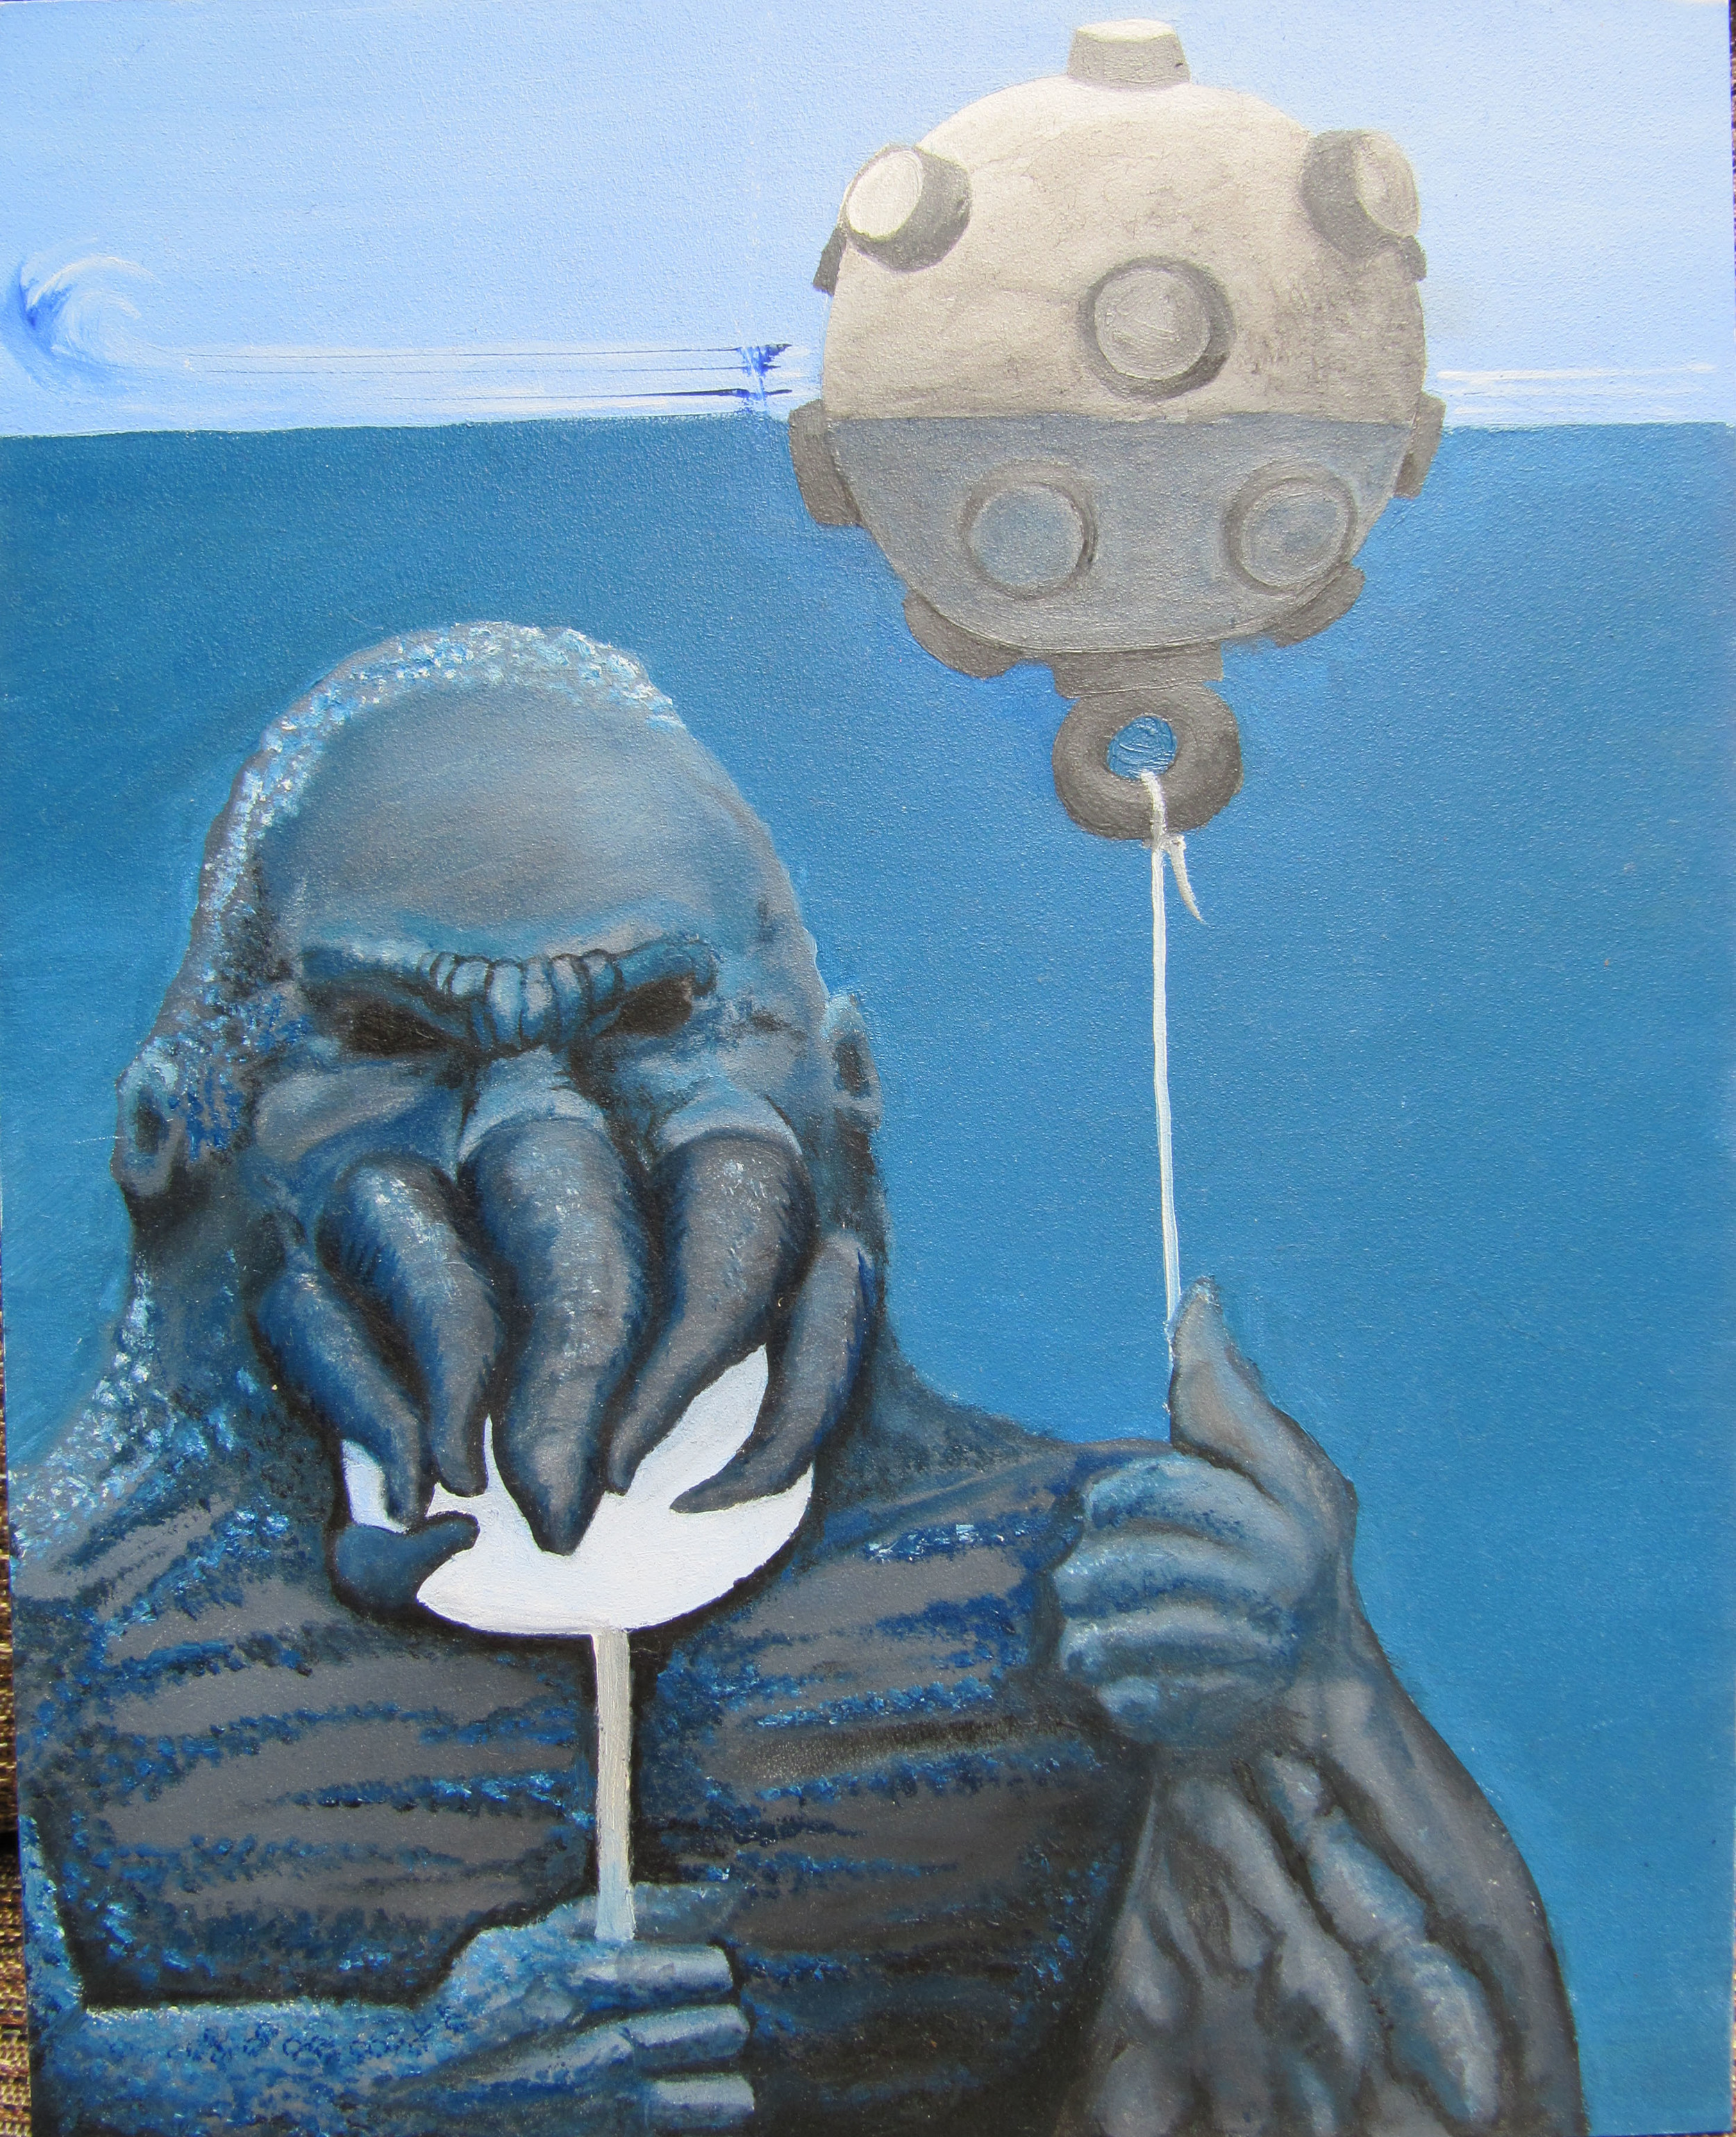 Cthulhu with sucker and balloon mine by Erik Roggeveen